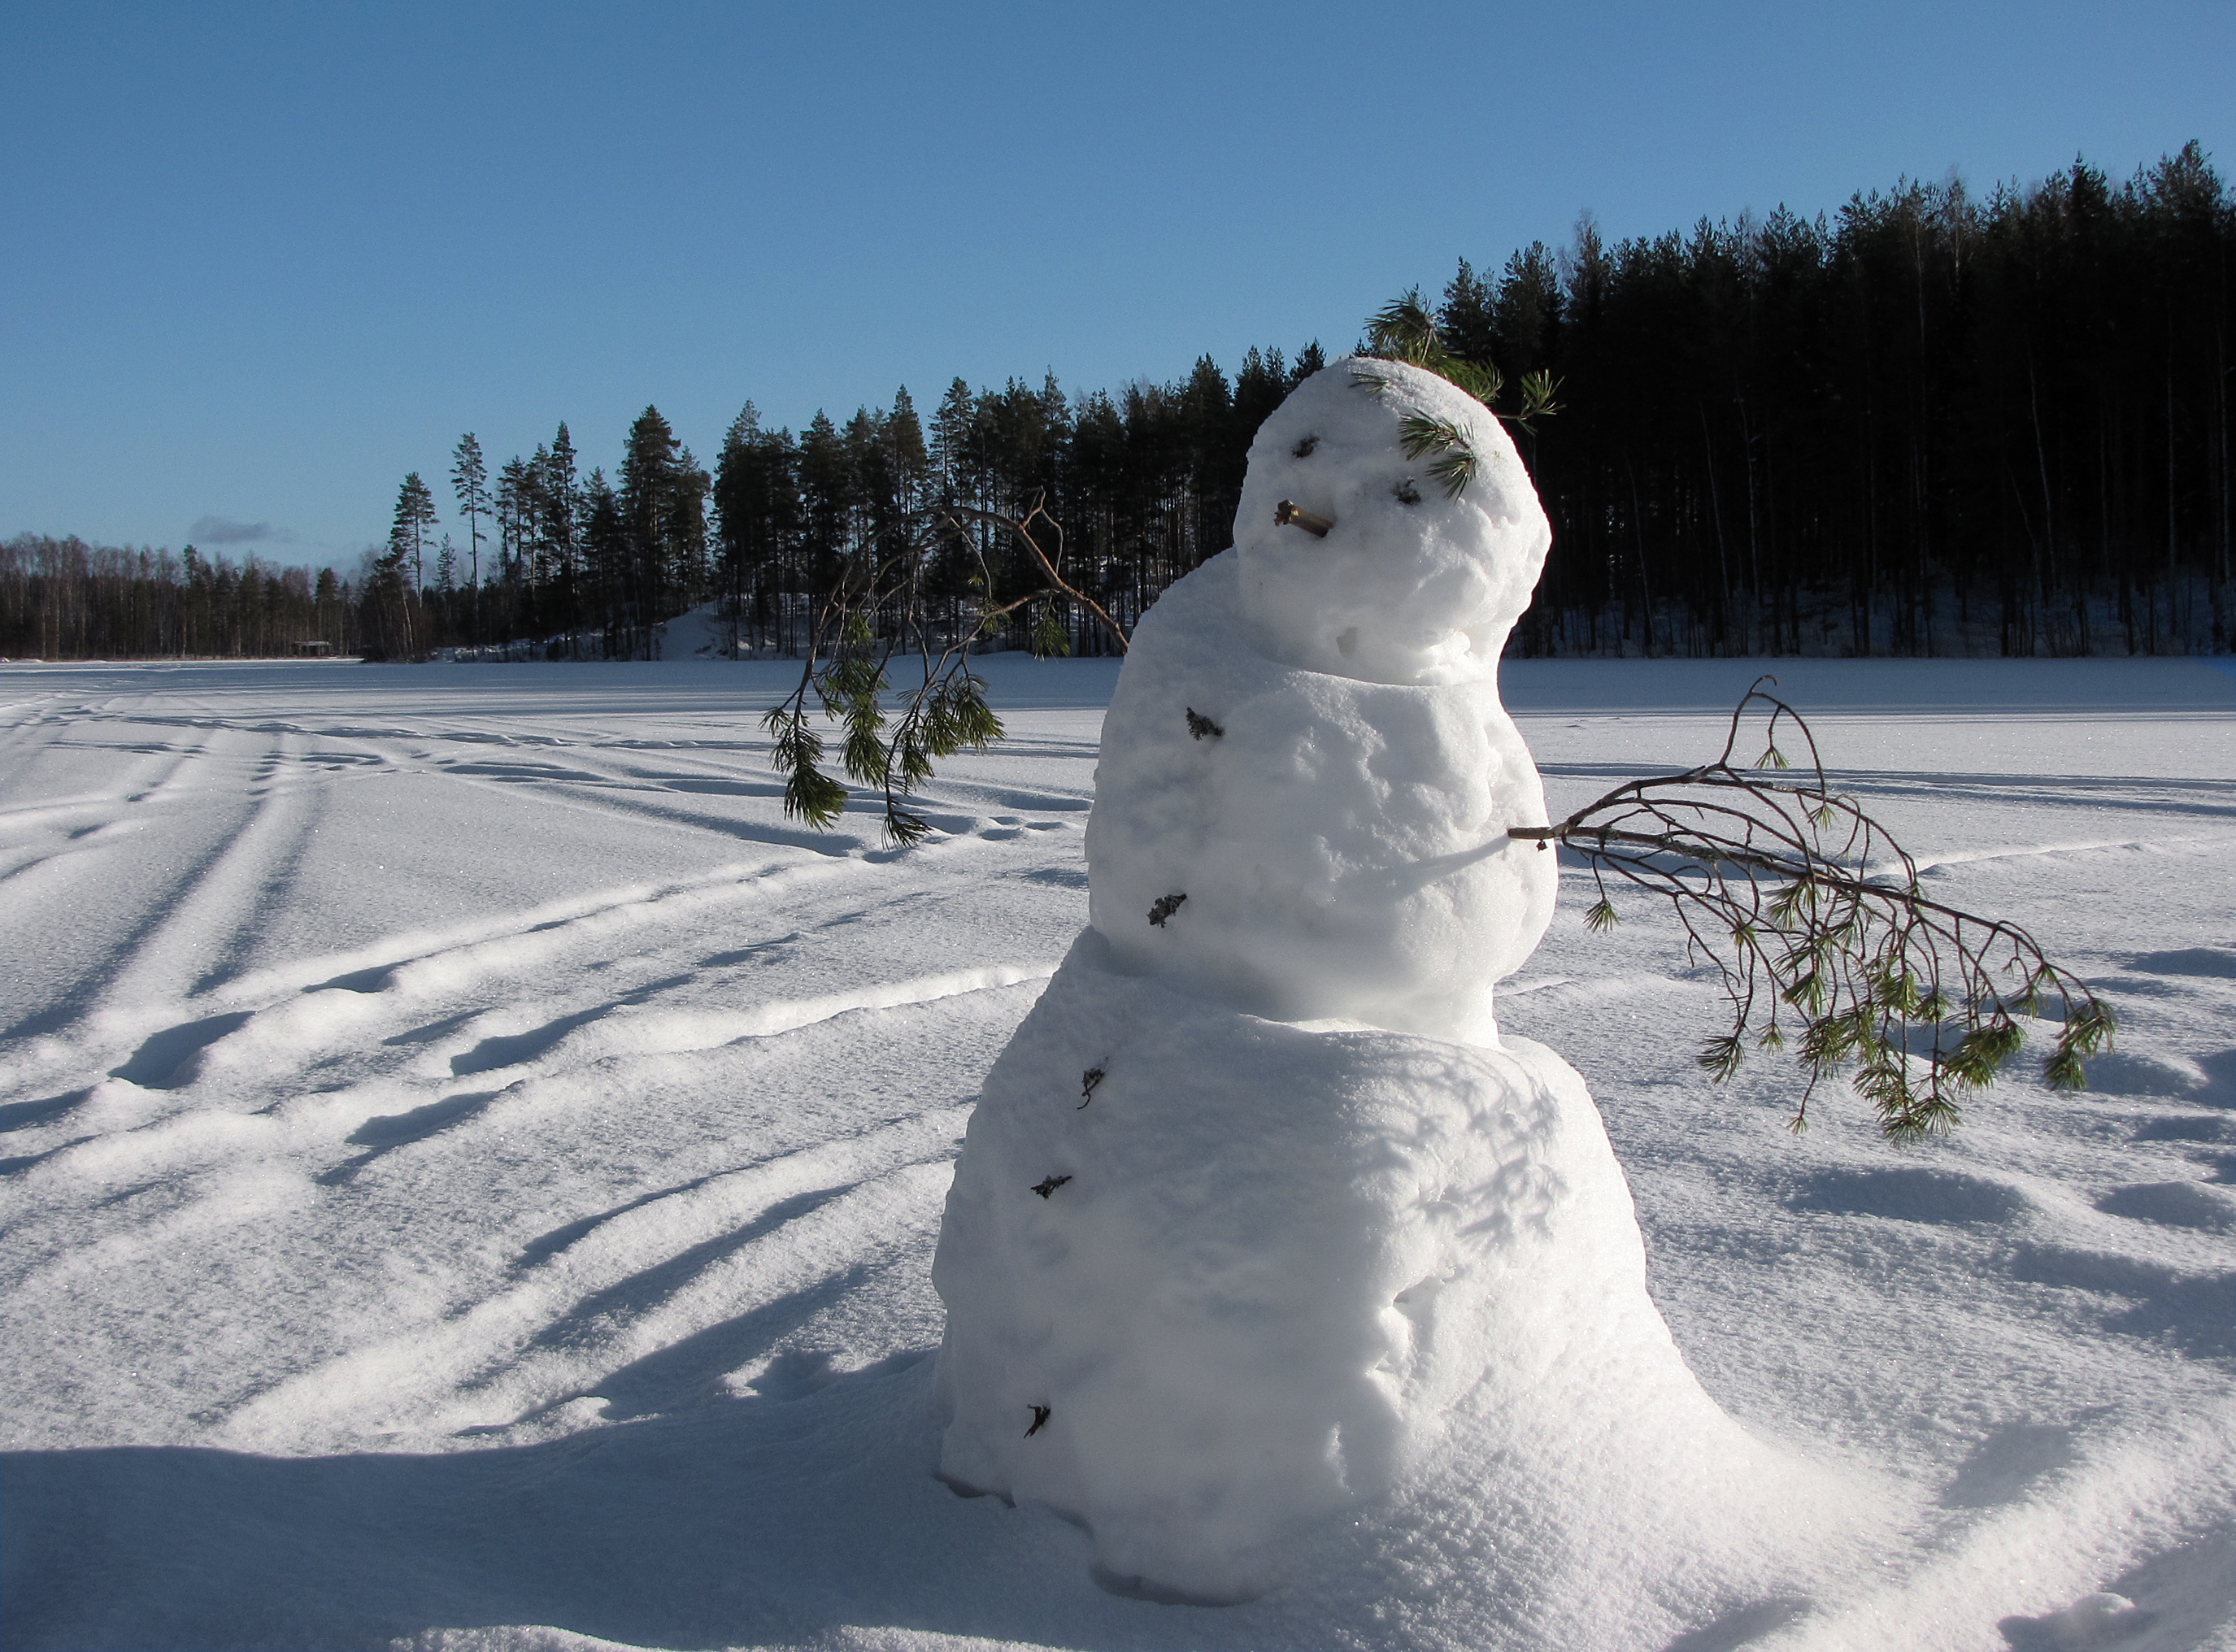 https://upload.wikimedia.org/wikipedia/commons/b/b3/Snowman_on_frozen_lake.jpg